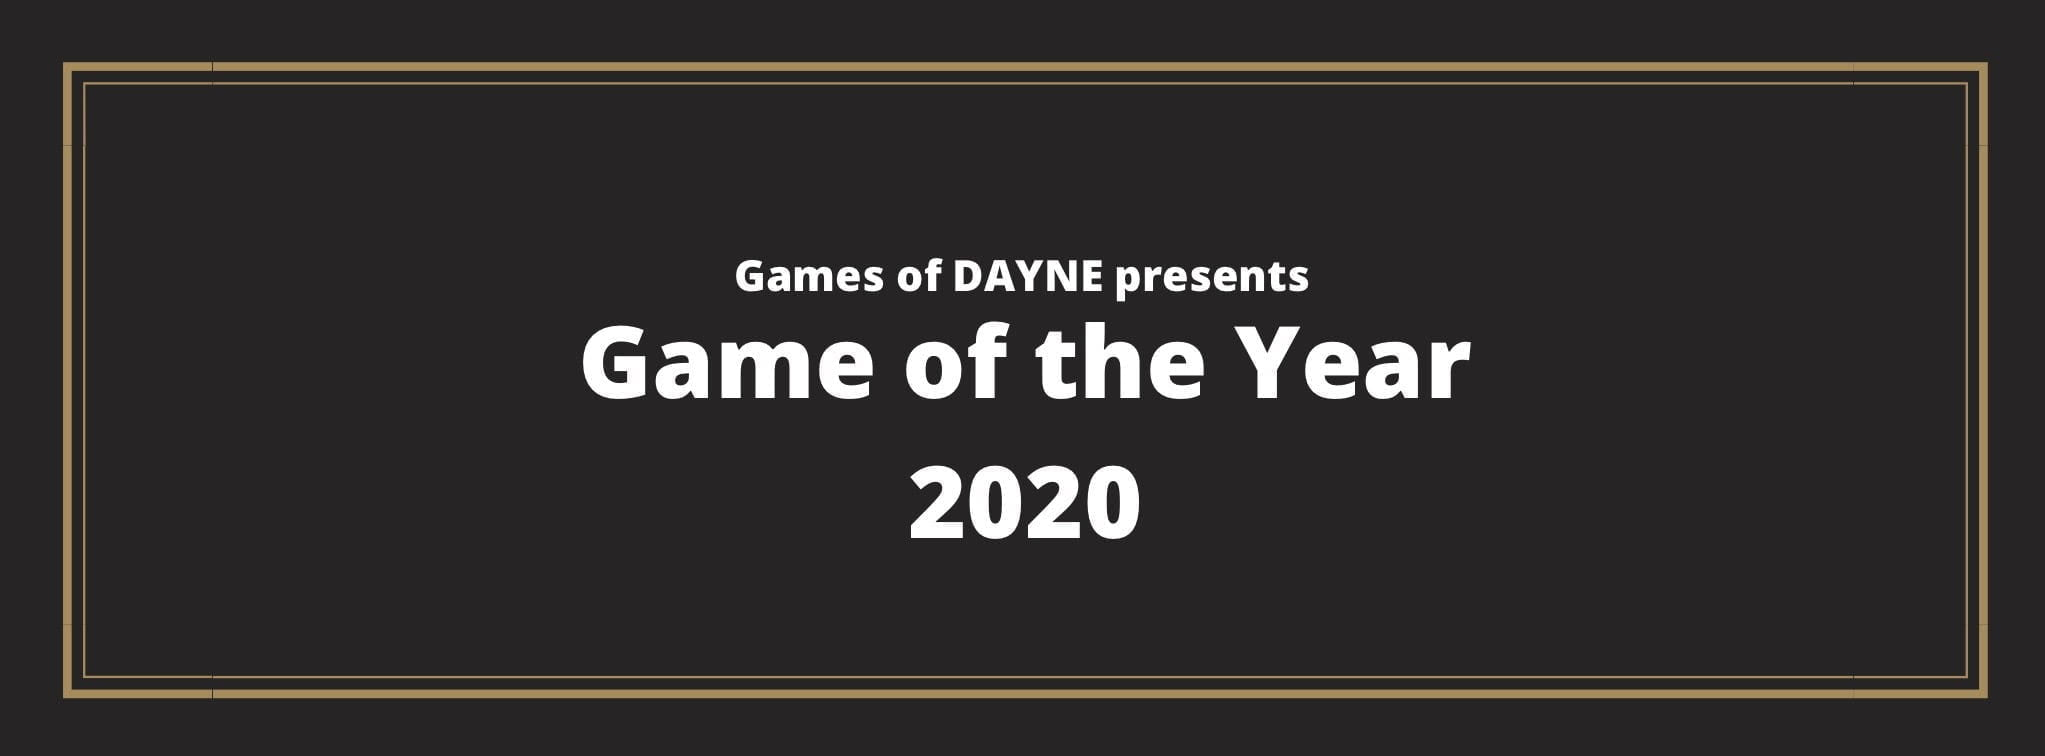 Game of the Year 2020